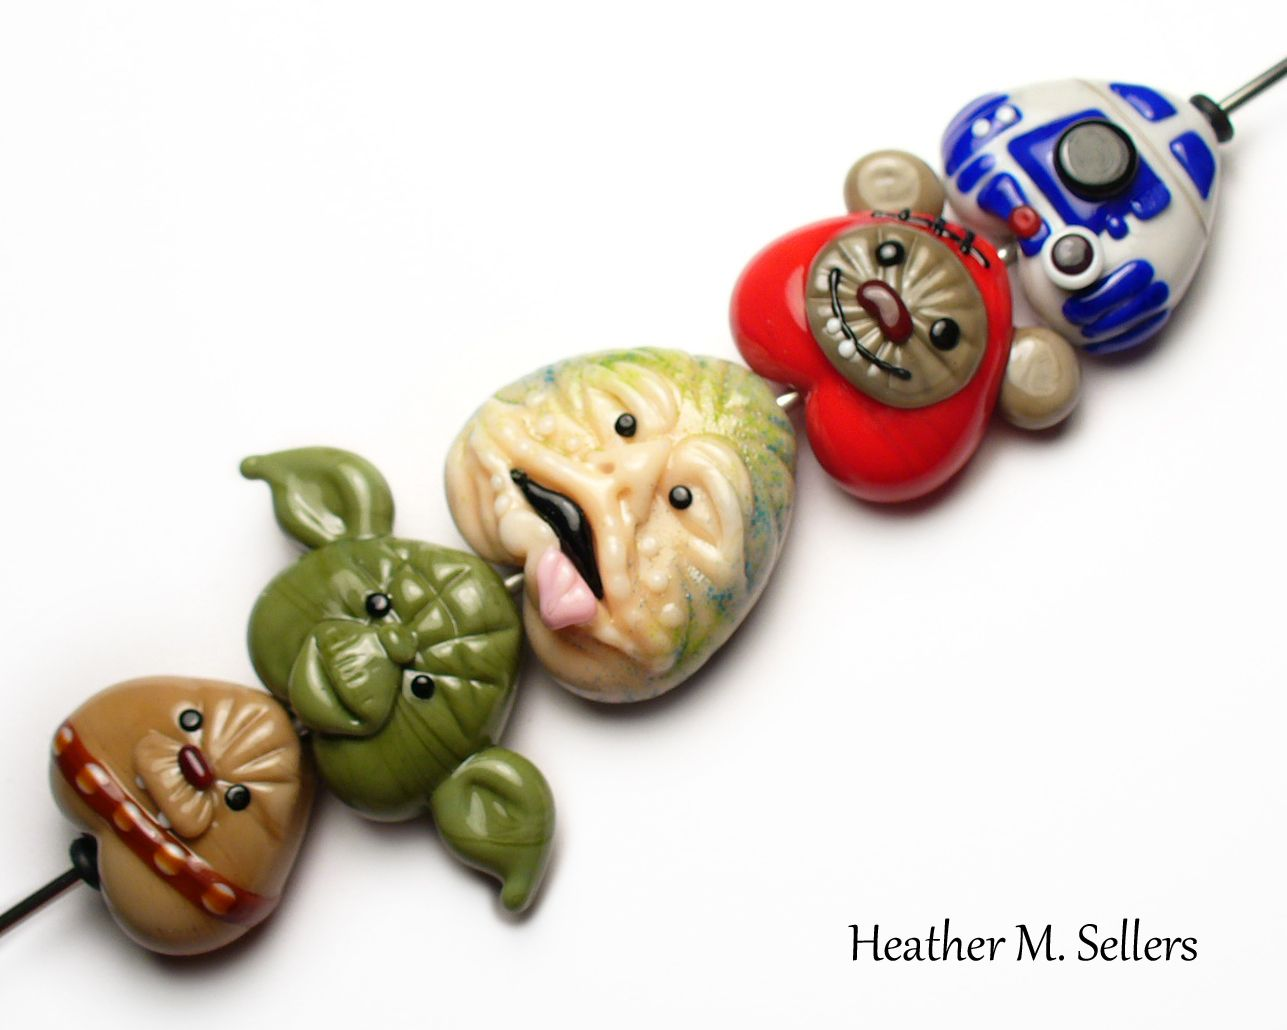 some of my favorite characters from star wars lampwork glass beads by heather sellers art glass by shawna